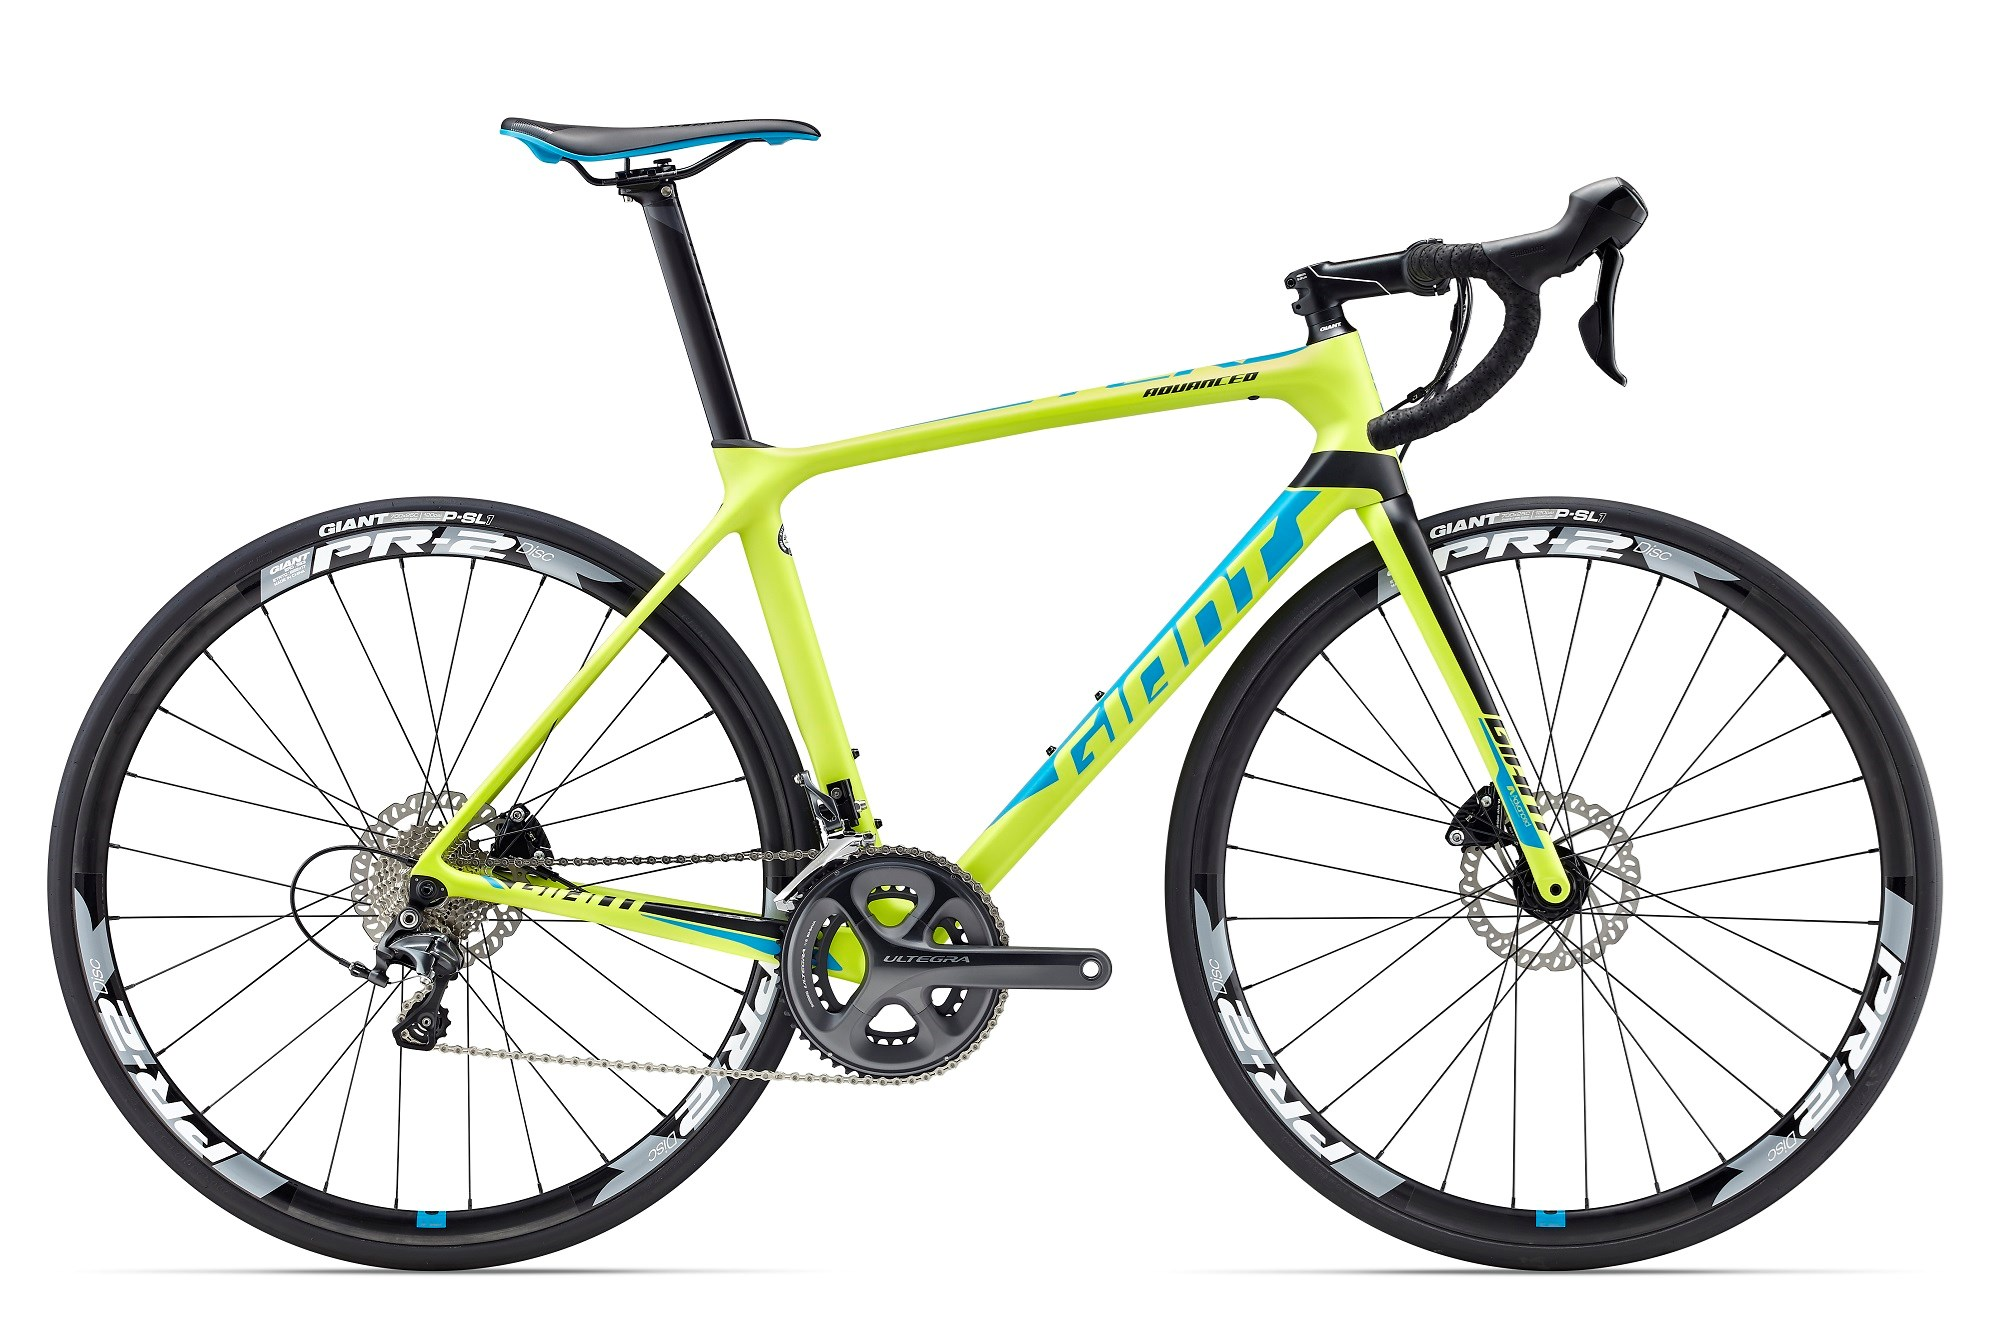 OCCASION Giant TCR Advanced 1 Disc 2017 (Green)